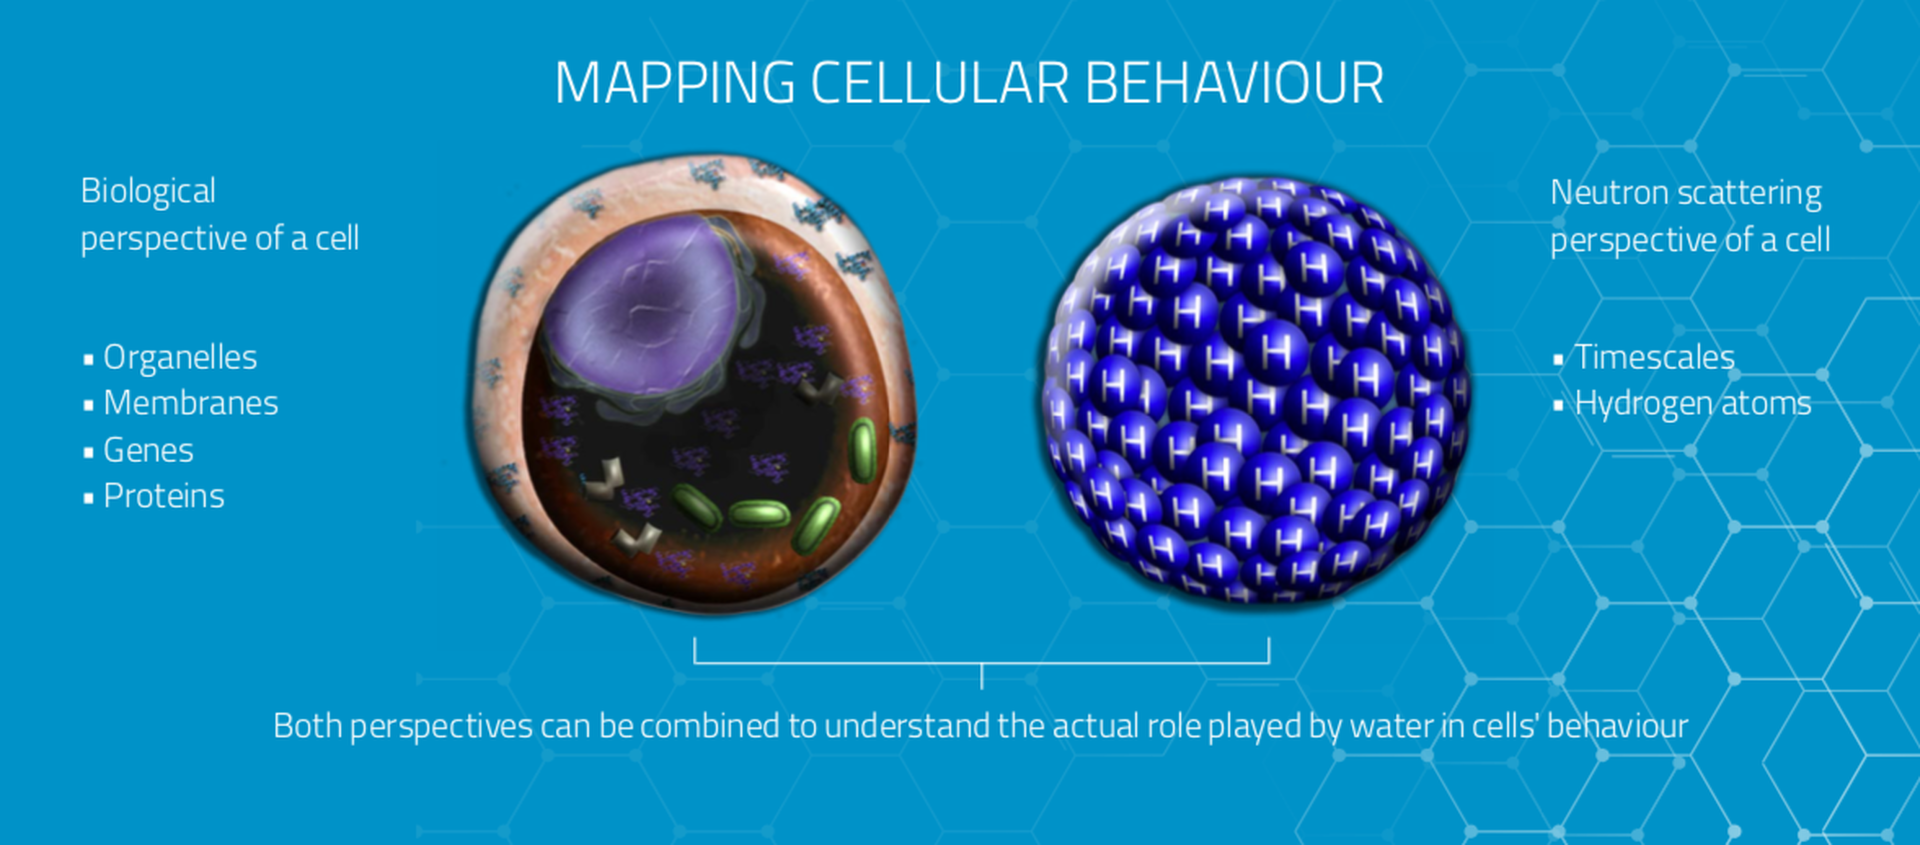 MIRACLES mapping cellular beahviour